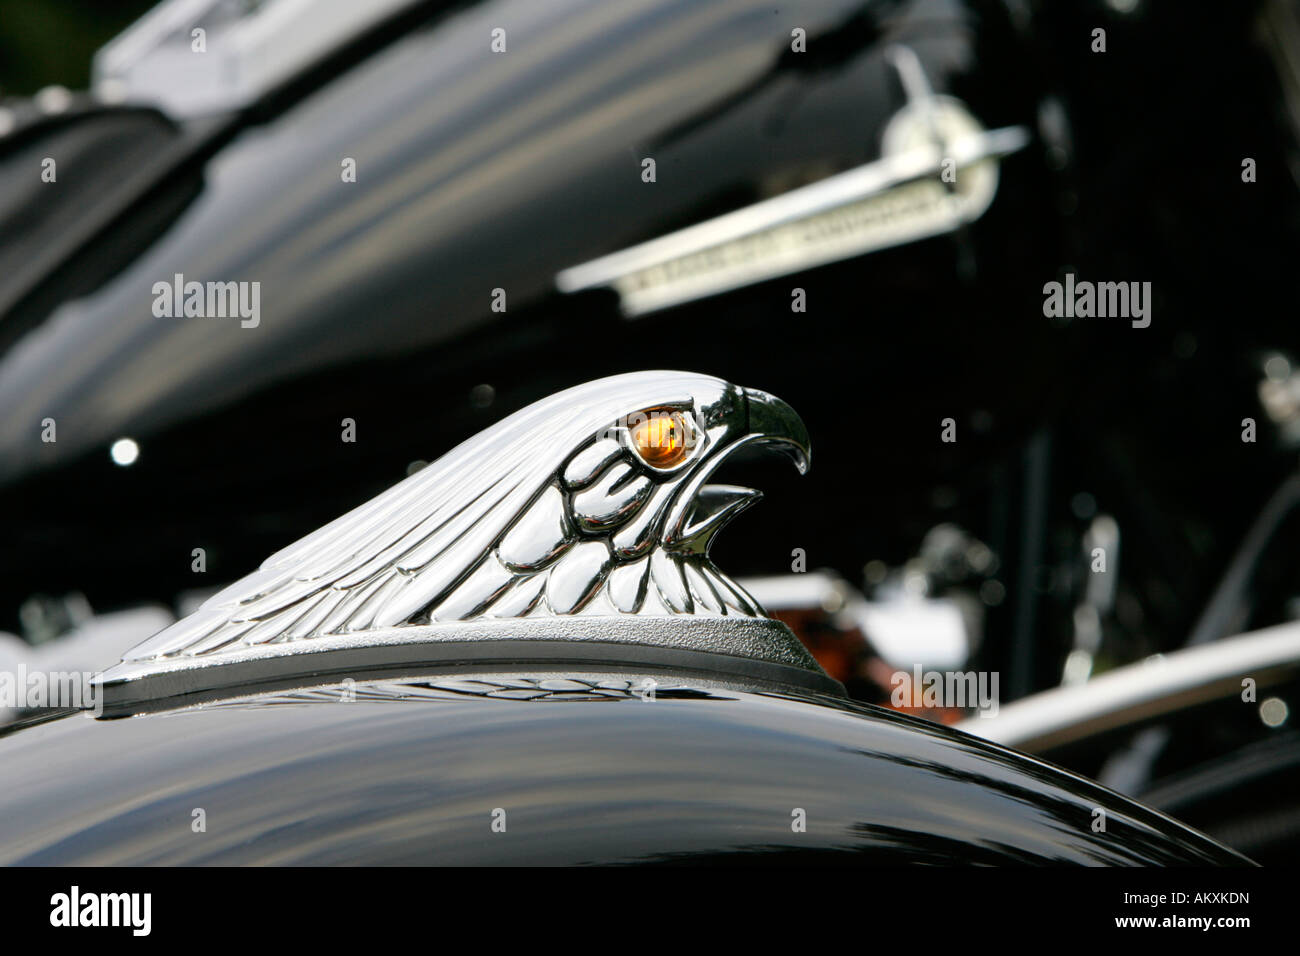 Harley Davidson, detail. Stock Photo